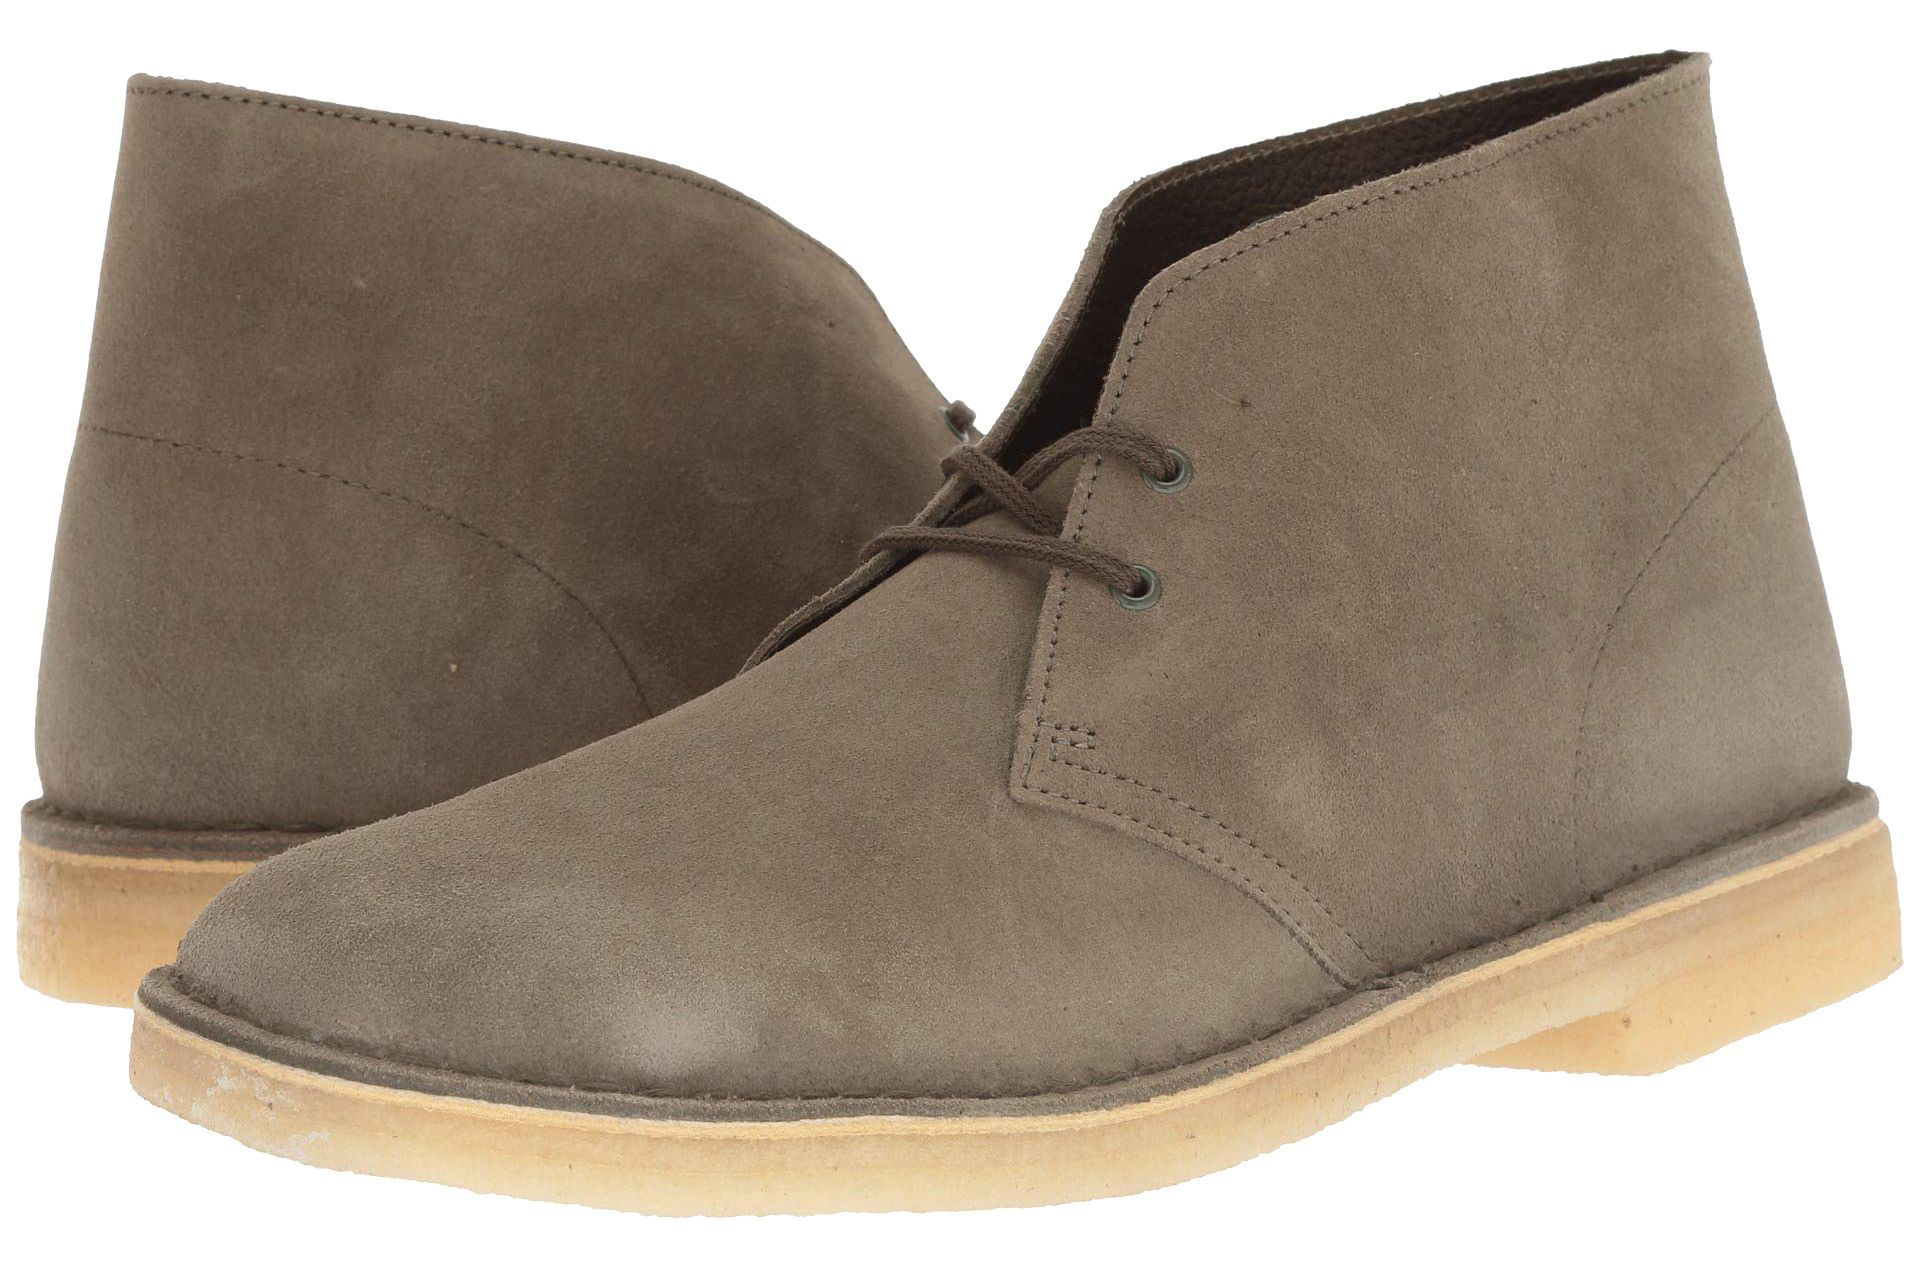 Clarks Desert Boot zappos.com $63.00 SHOP When it comes to timeless desert boots, you can't go wrong with a Clarks classic.